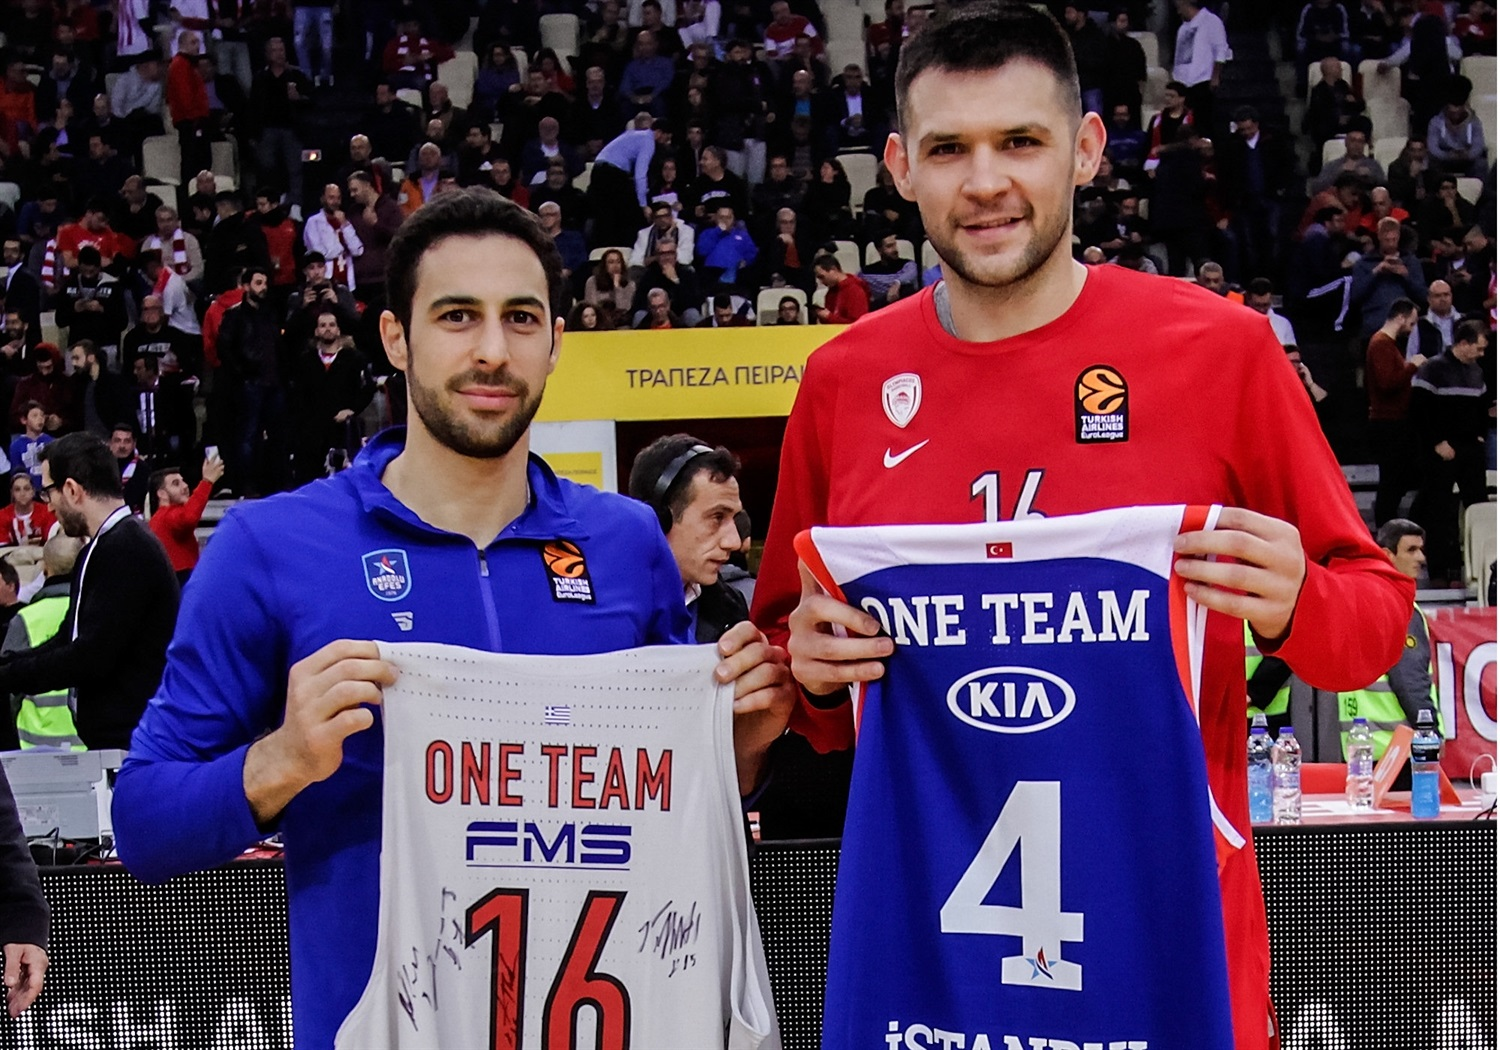 Dogus Balbay and Kostas Papanikolaou, One Team Games - Olympiacos Piraeus vs. Anadolu Efes Istanbul - EB18